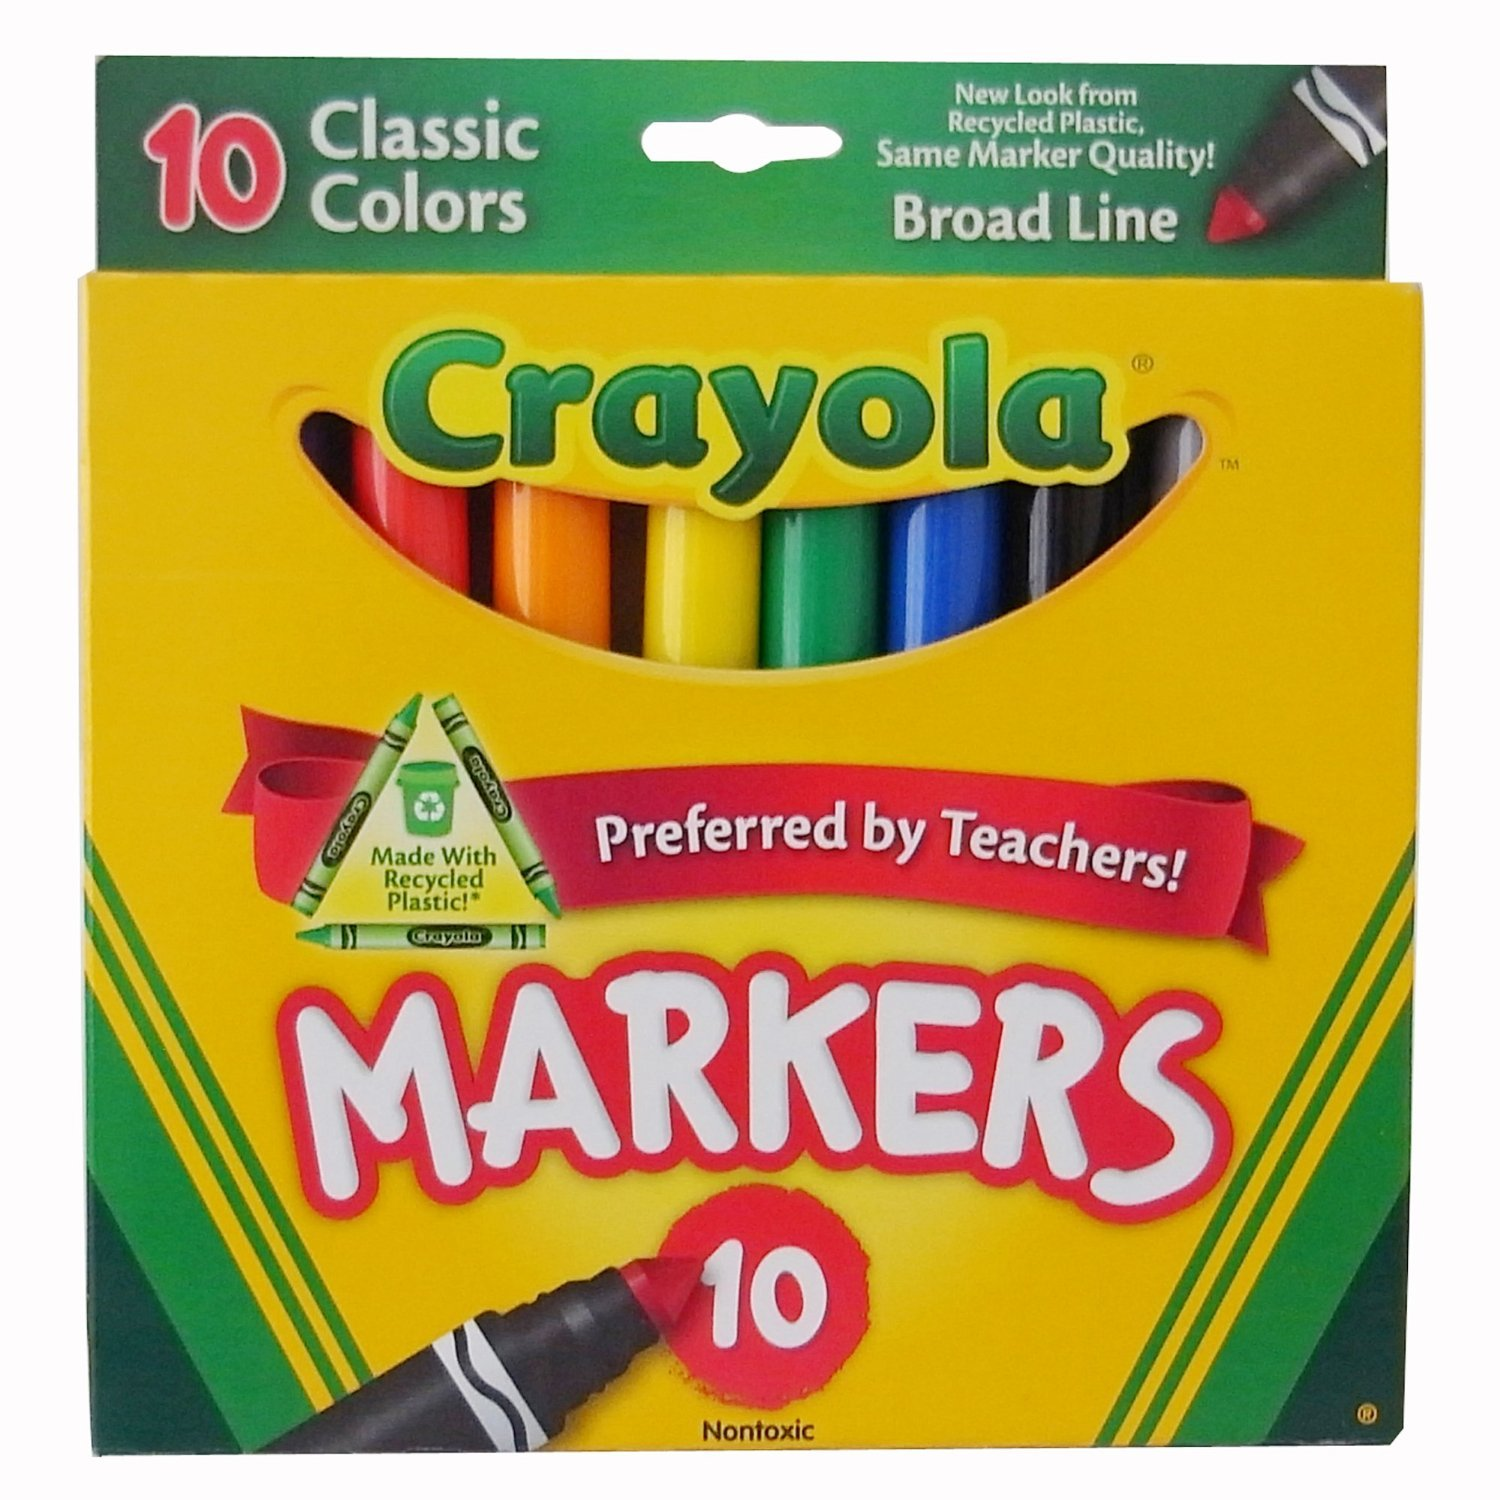 Crayola Broad Line Markers, Classic Colors 10 Each (Pack of 24) by Crayola